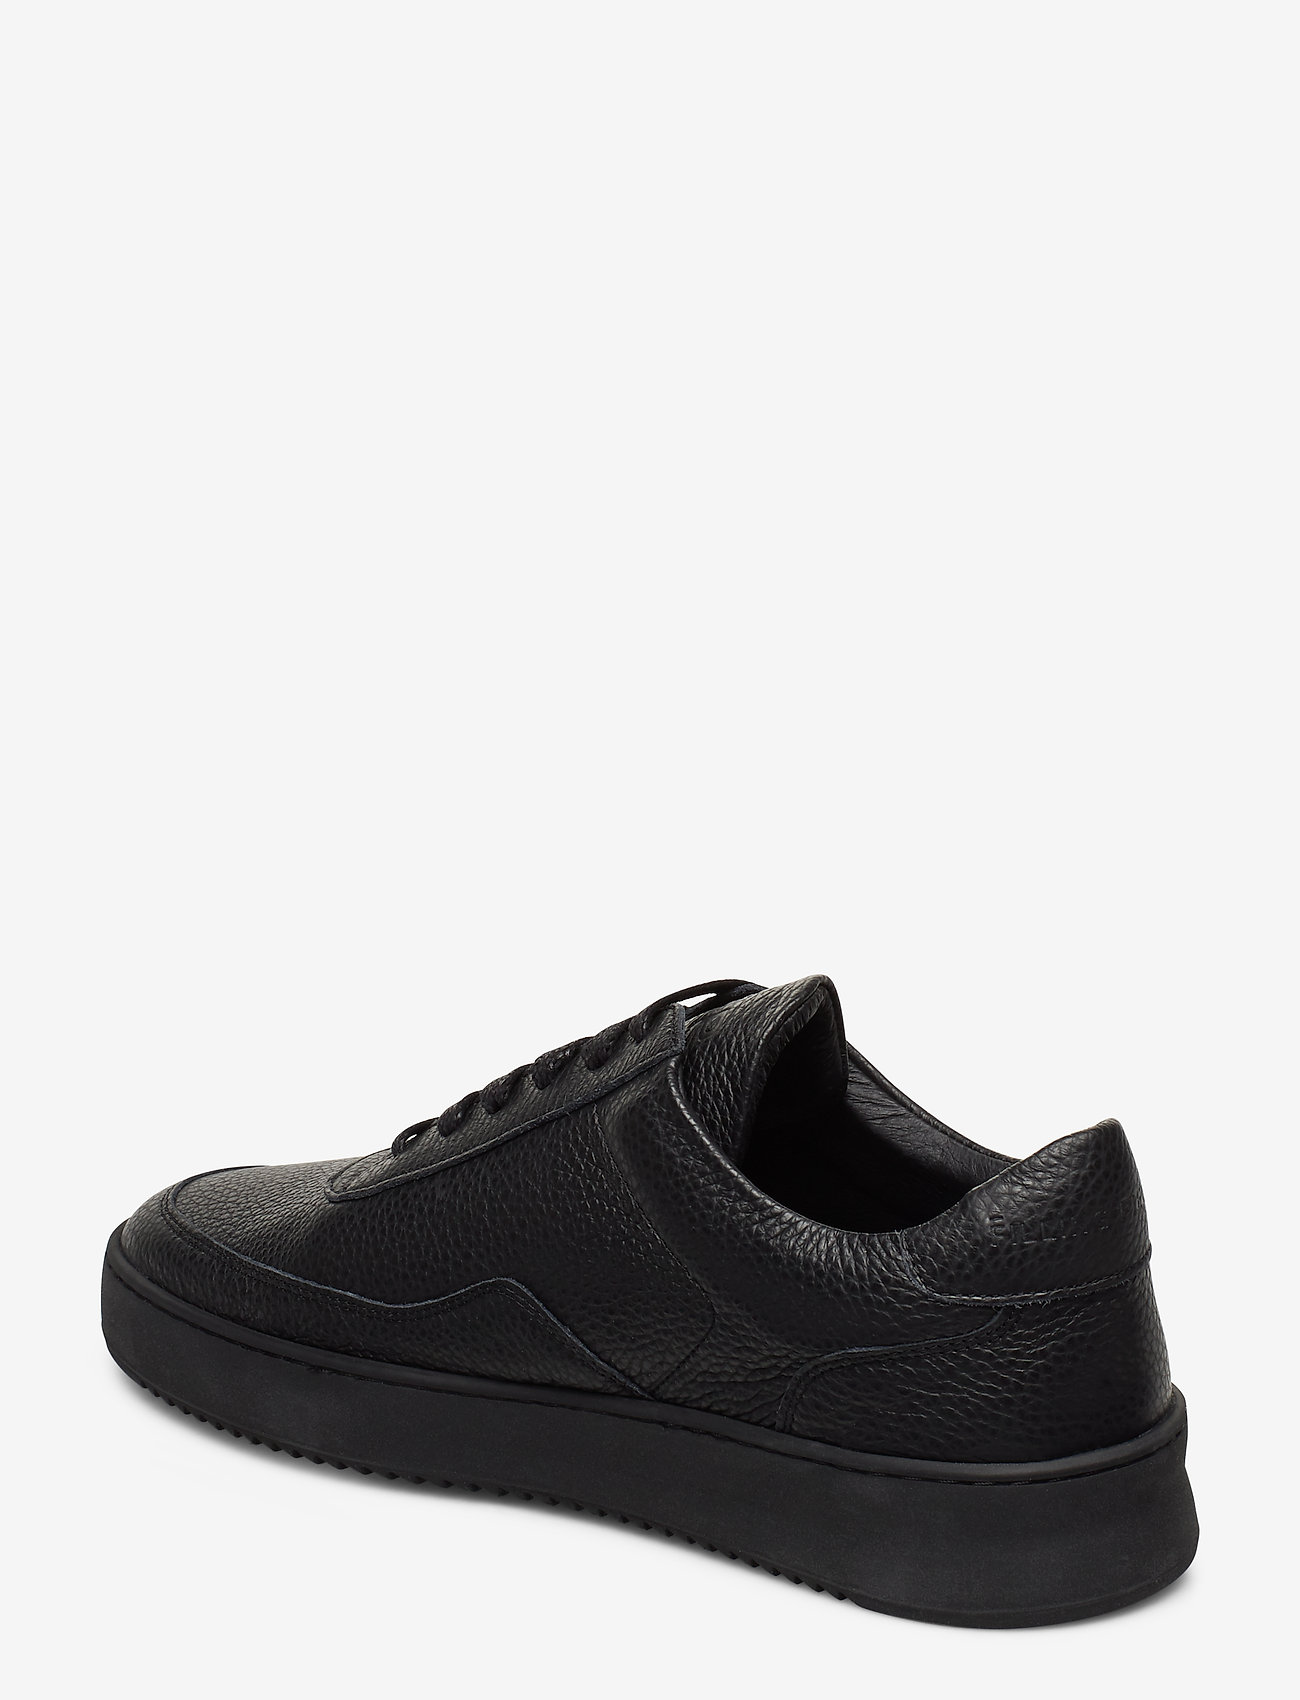 Mondo Ripple (All Black) - Filling Pieces